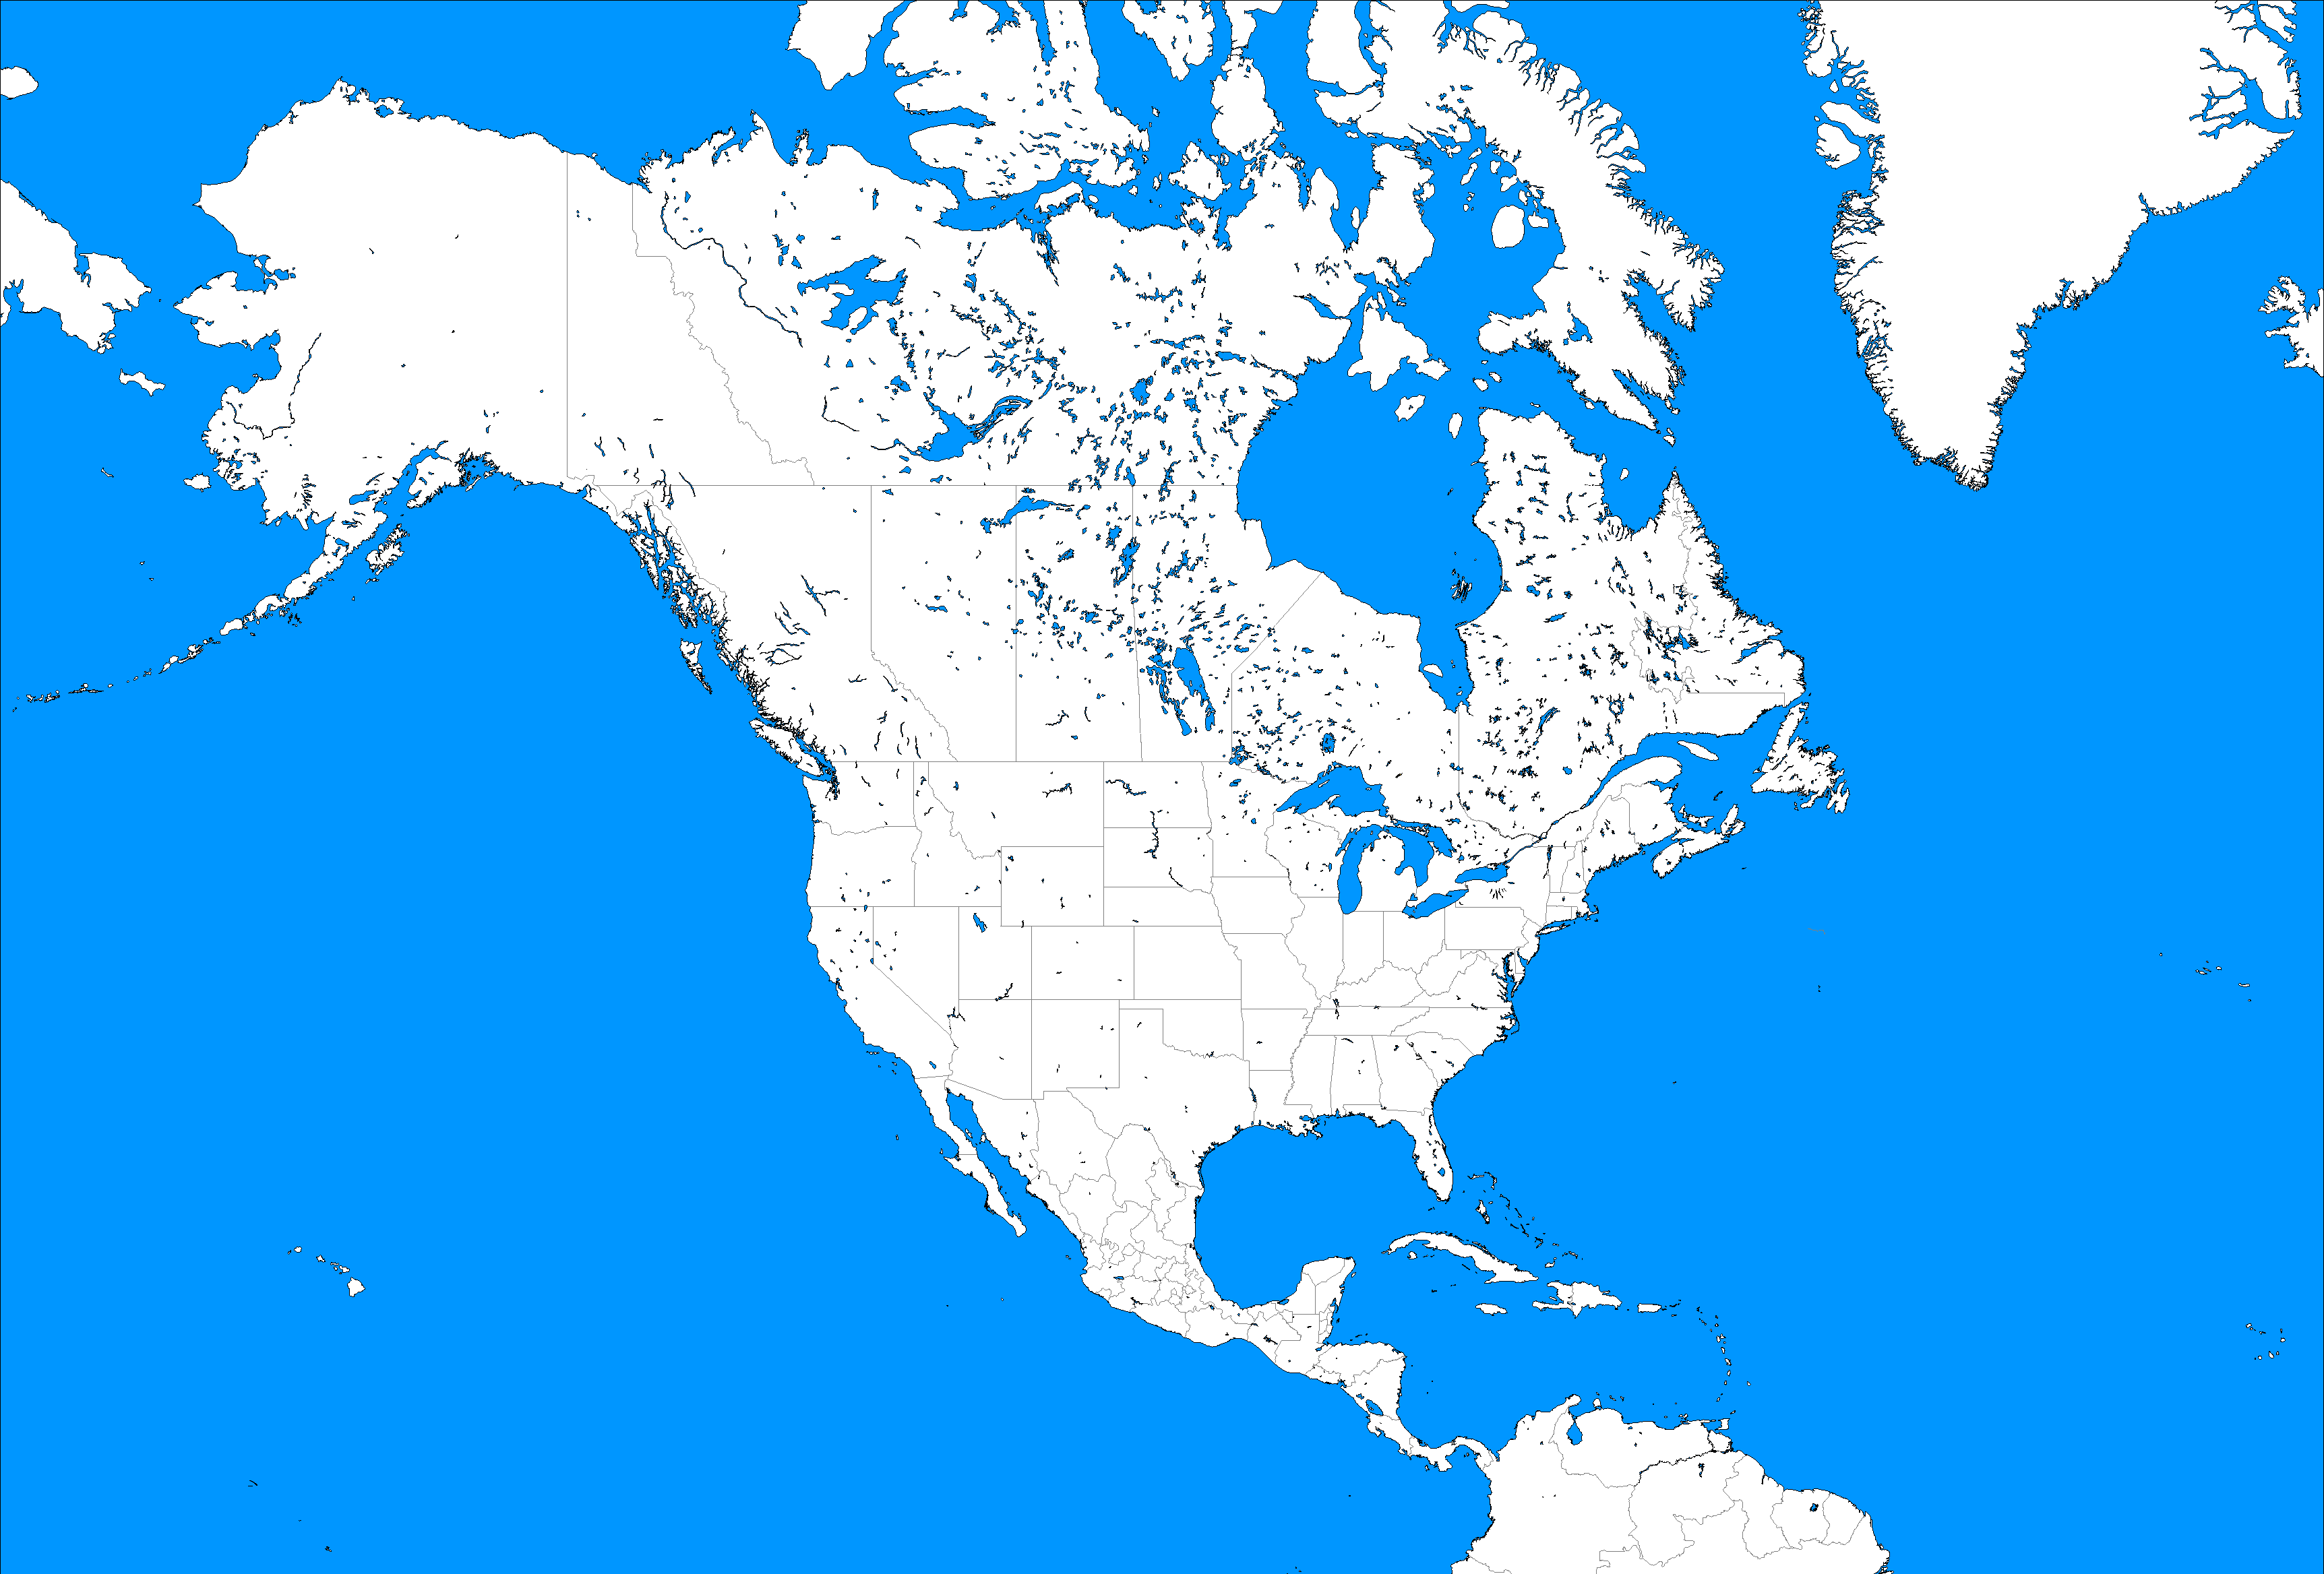 FileBLANK In North America Mini Map Riverssvg Wikimedia Shaded - Map of northeast us rivers